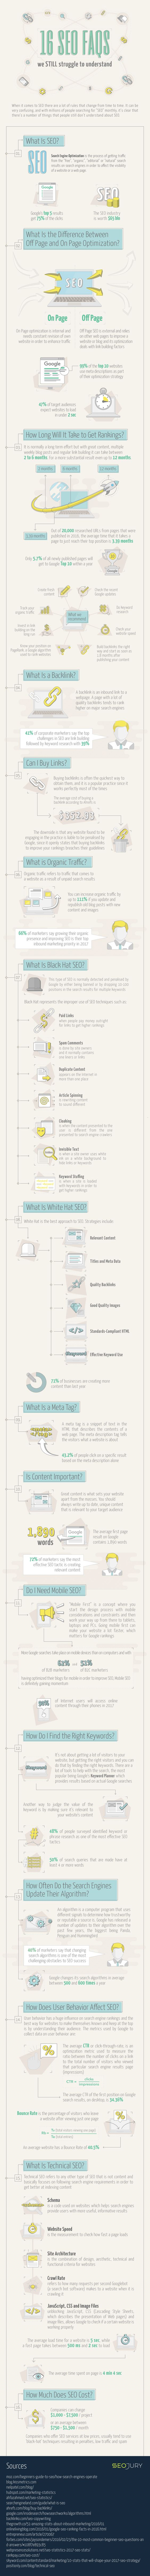 Infographic Image of the 16 SEO FAQs